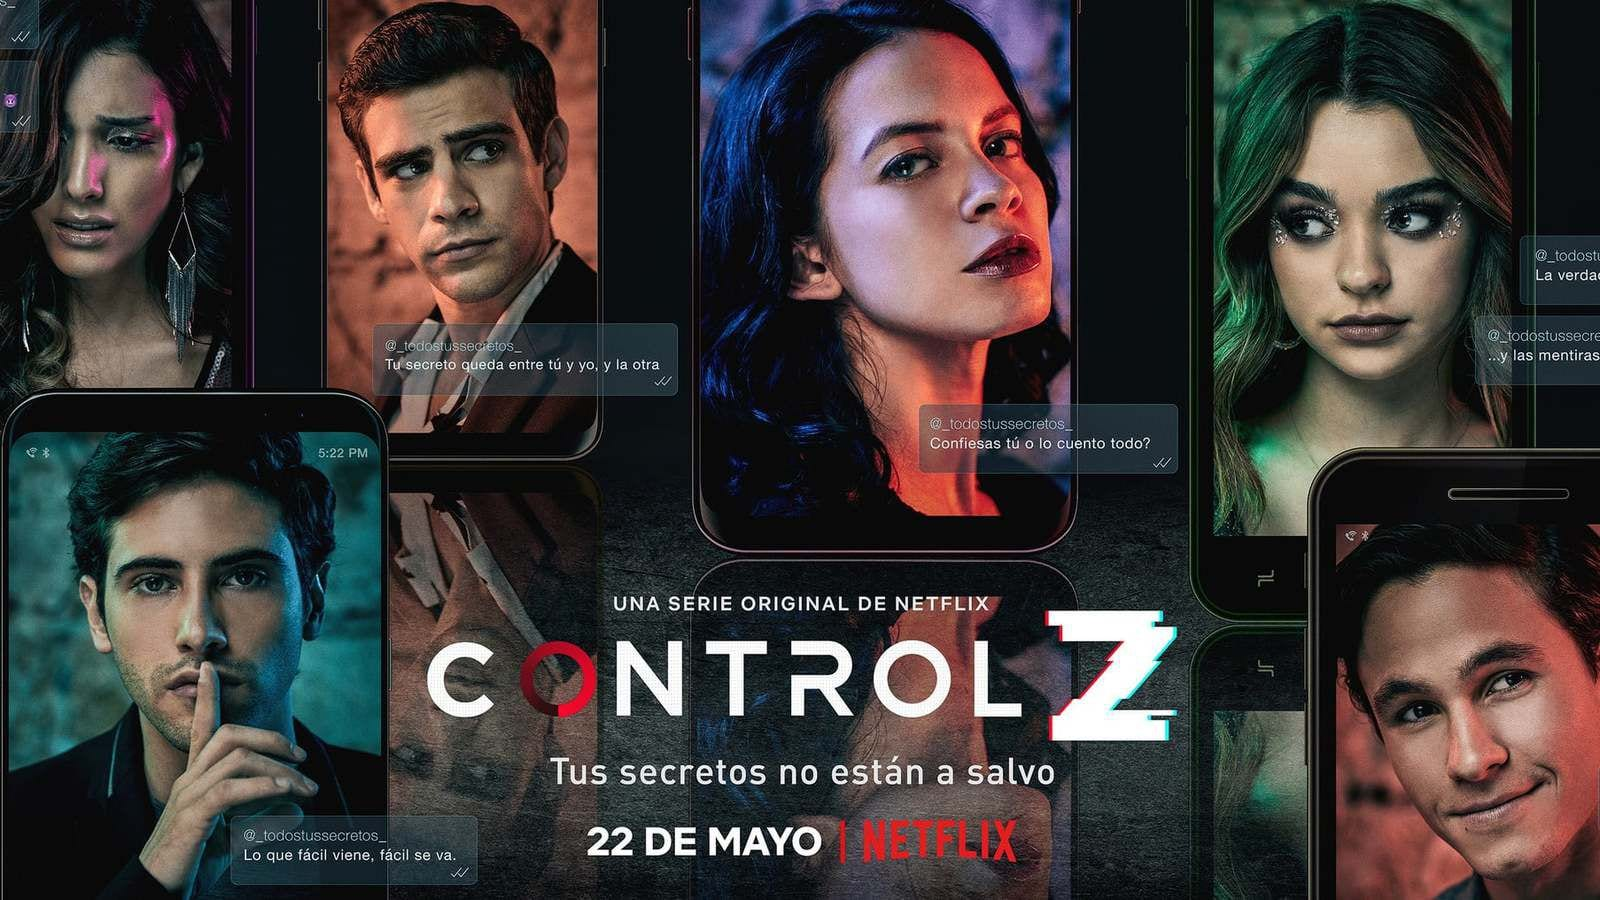 Le nuove serie tv in uscita in questi giorni su Netflix e Amazon Prime Video, con Control Z, Homecoming e Dynasty